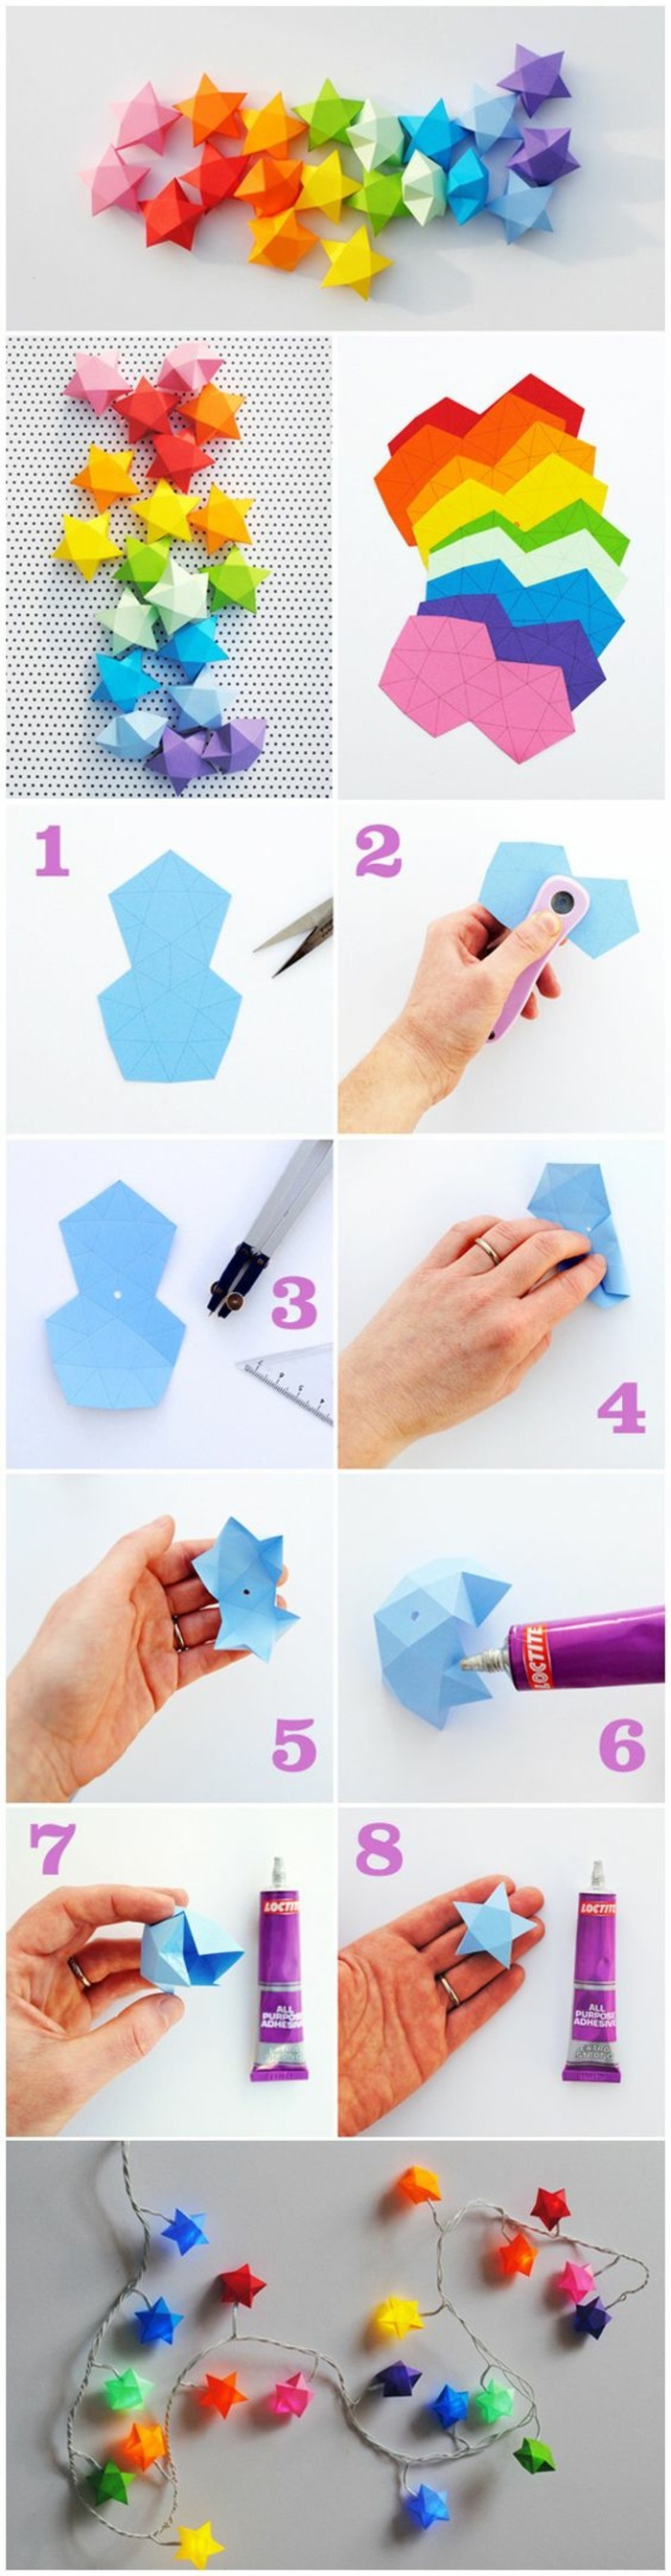 colourful paper, cut into stars, craft ideas for adults, string of lights, diy tutorial, step by step